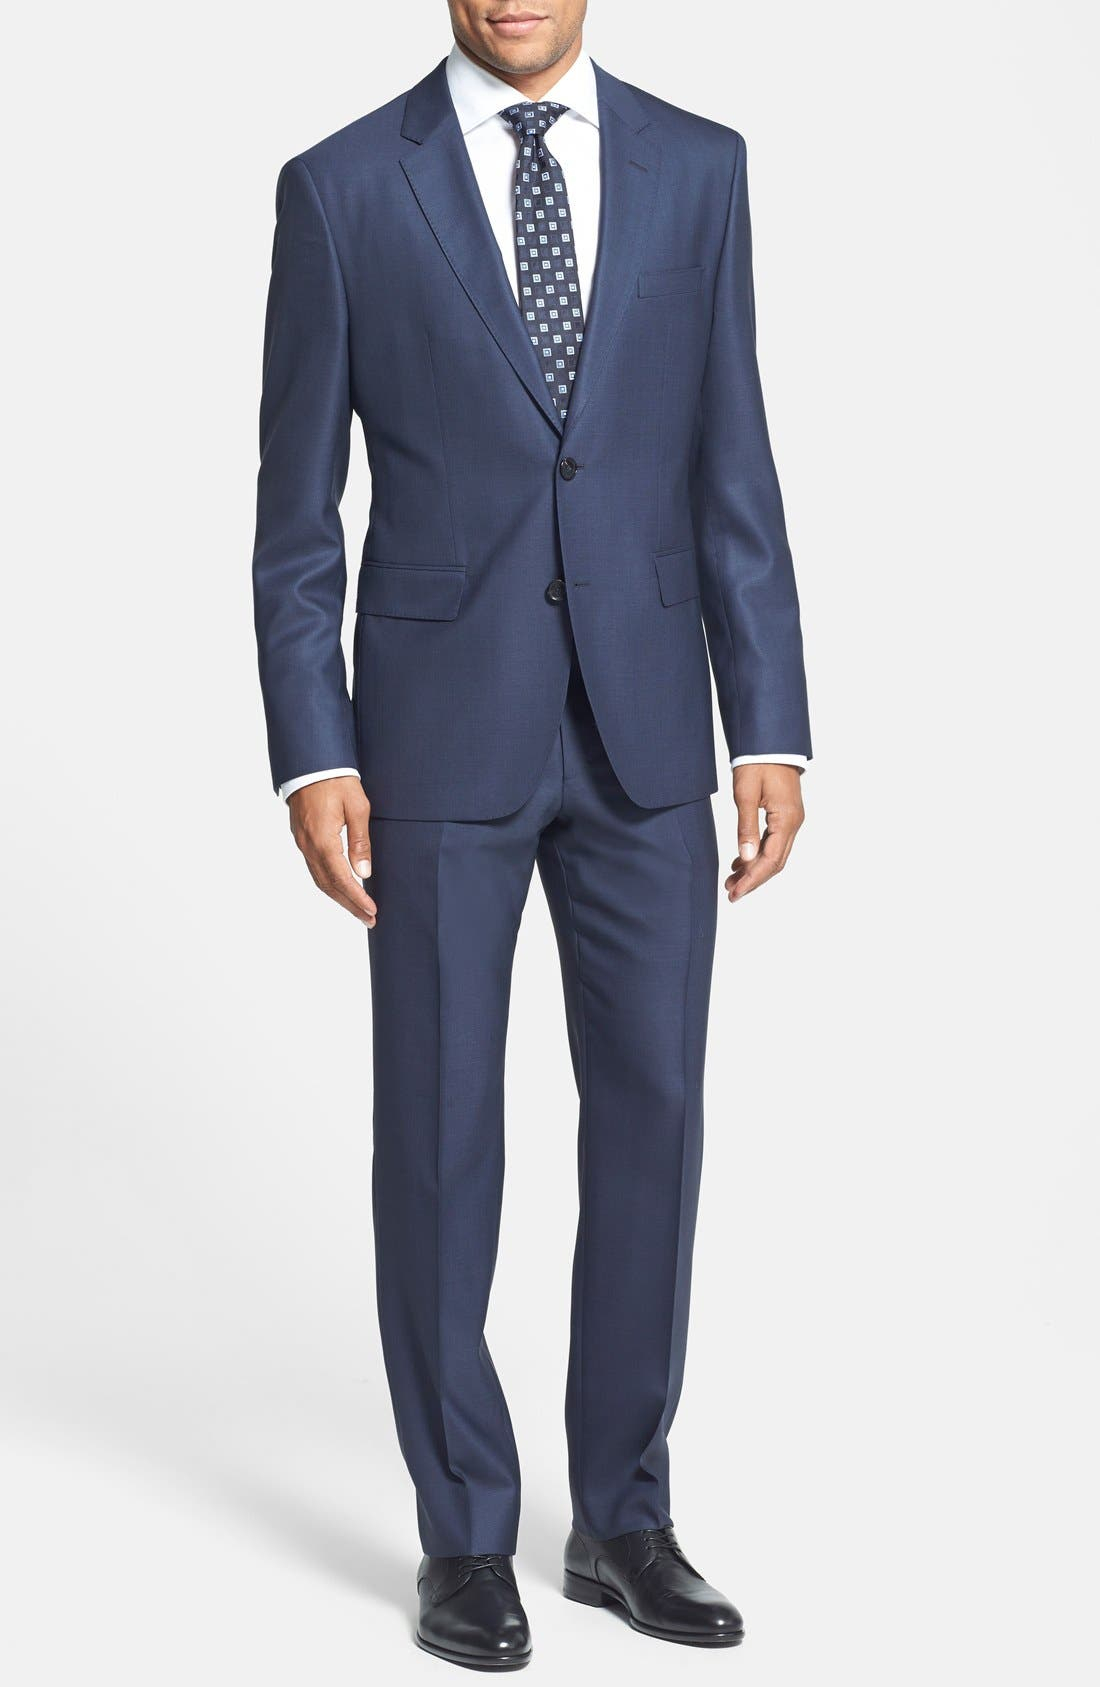 BOSS HUGO BOSS 'Johnstons/Lenon' Trim Fit Wool Suit,                             Main thumbnail 1, color,                             410